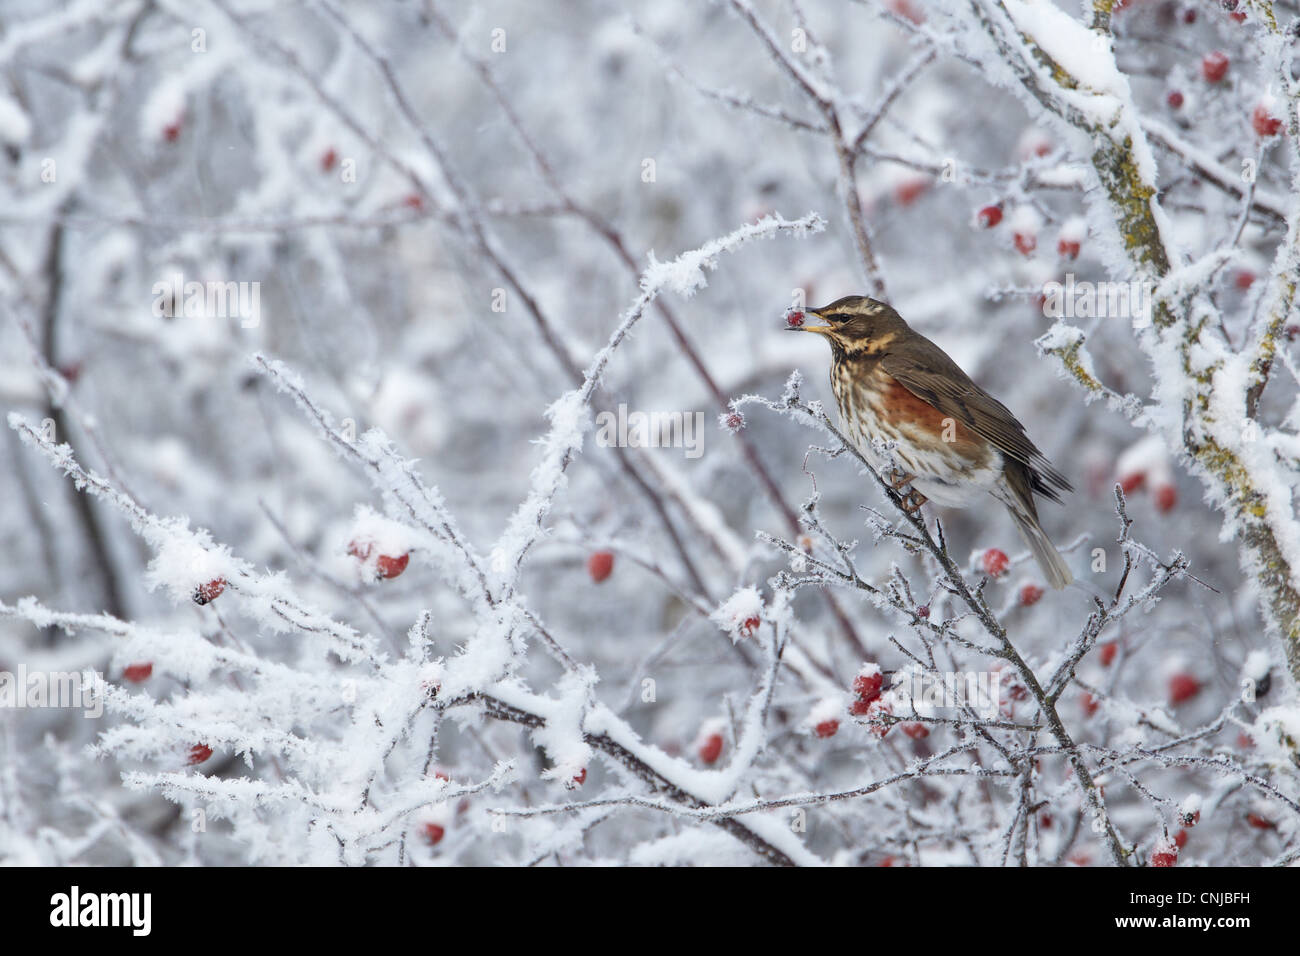 Redwing (Turdus iliacus) adult, feeding on hawthorn berries in hoar fost covered hedgerow, Shropshire, England, Stock Photo